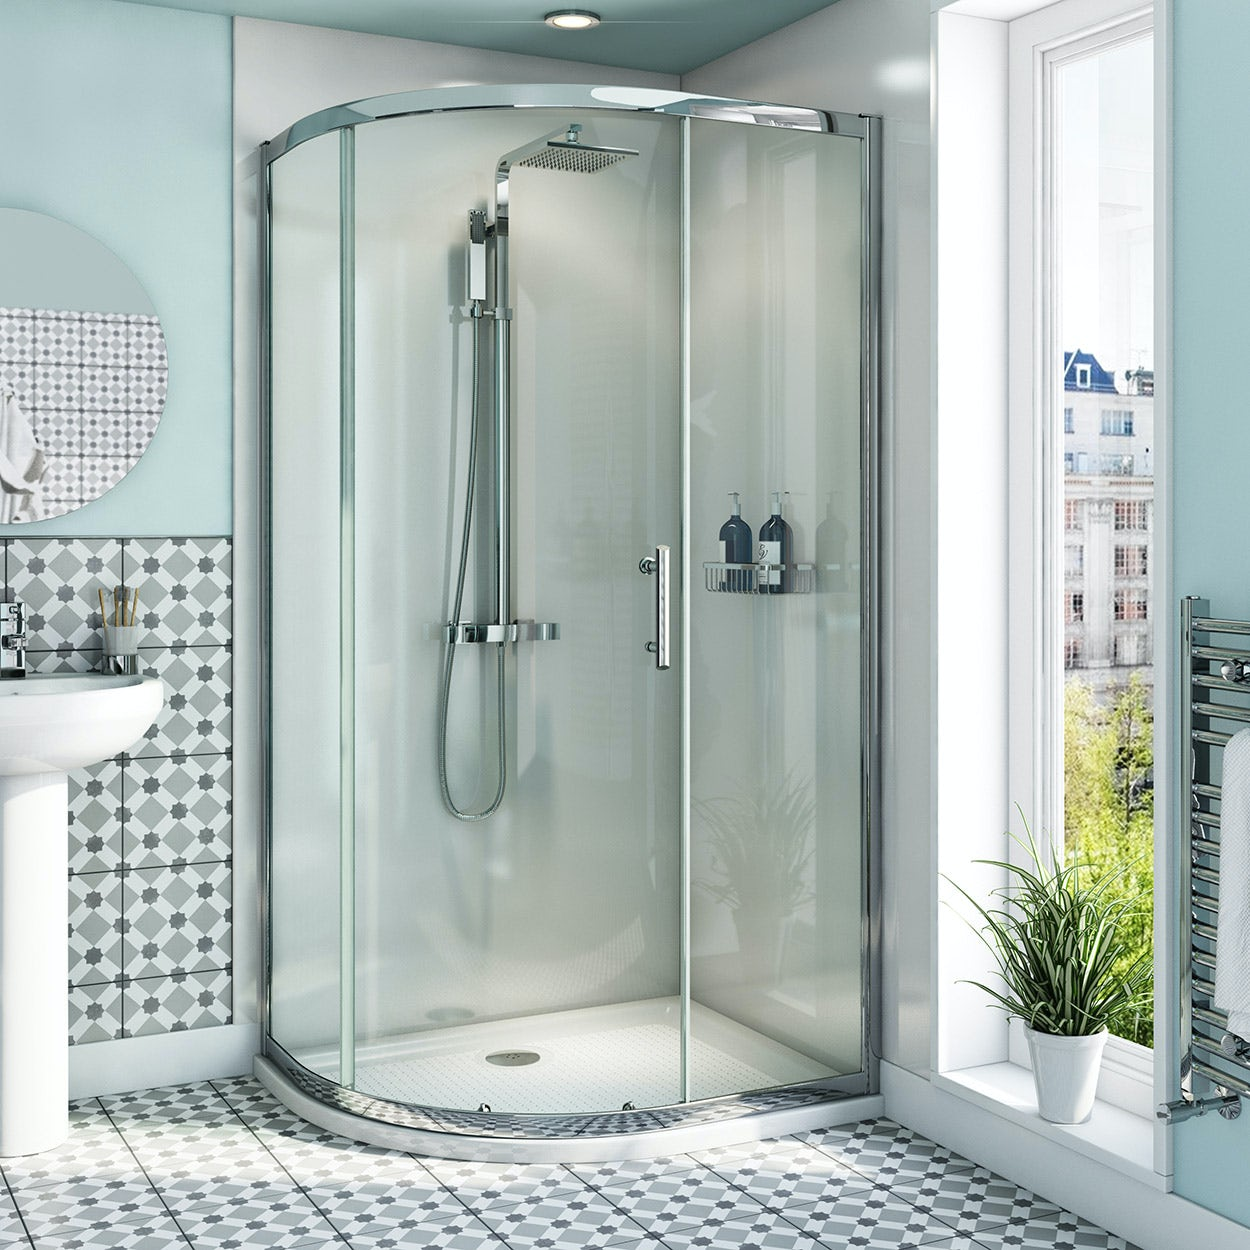 Orchard 6mm left handed offset quadrant shower enclosure with anti-slip tray 1000 x 800